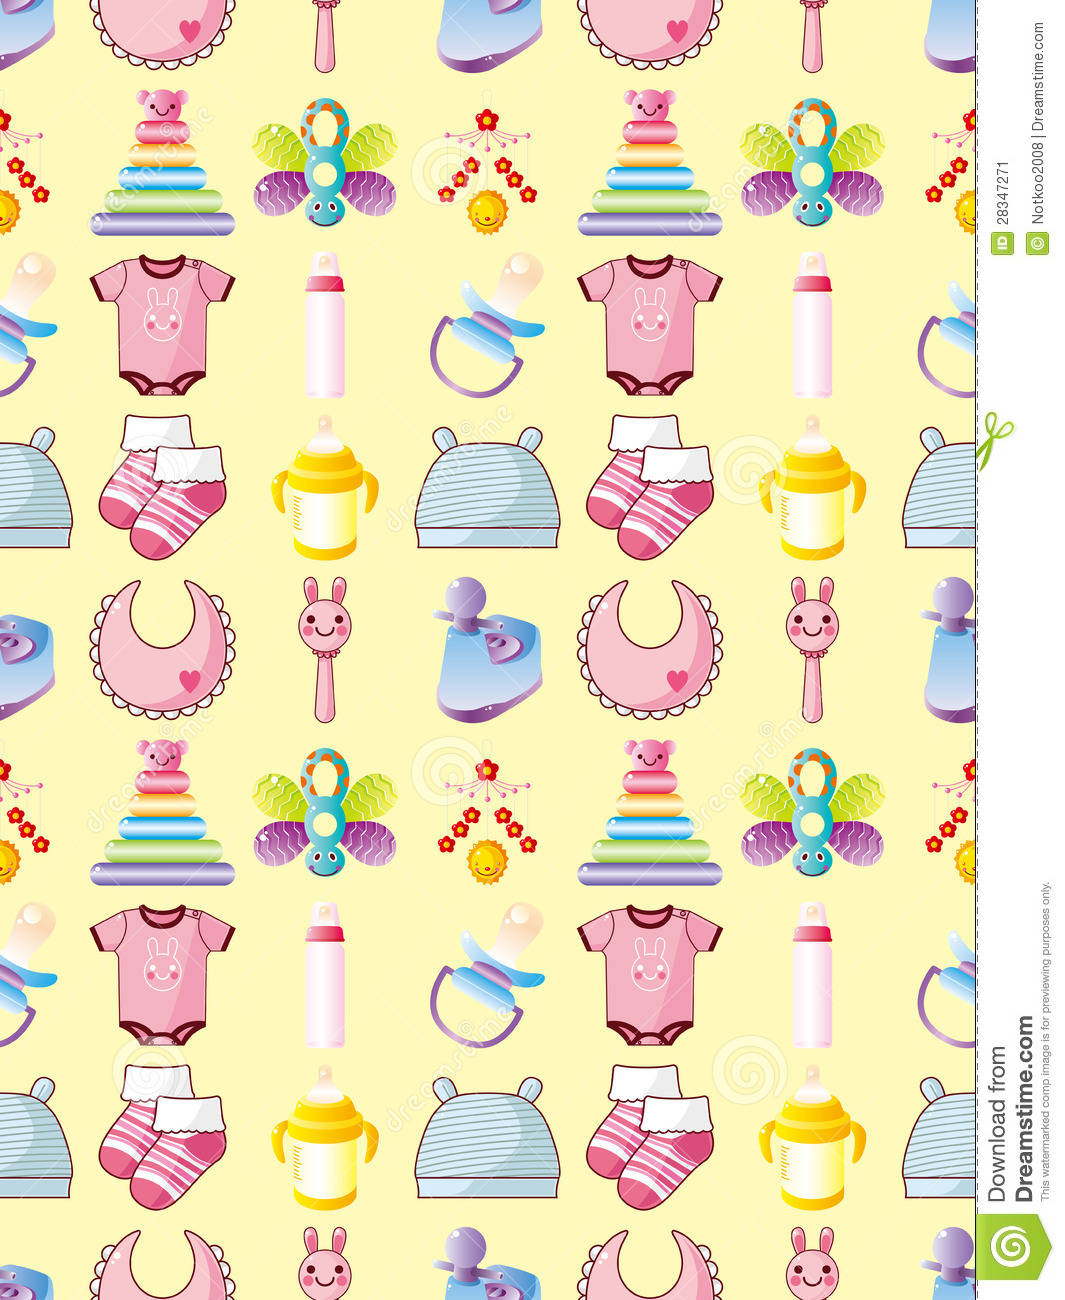 Cute Duck Wallpaper Seamless Baby Thing Pattern Stock Vector Image 28347271